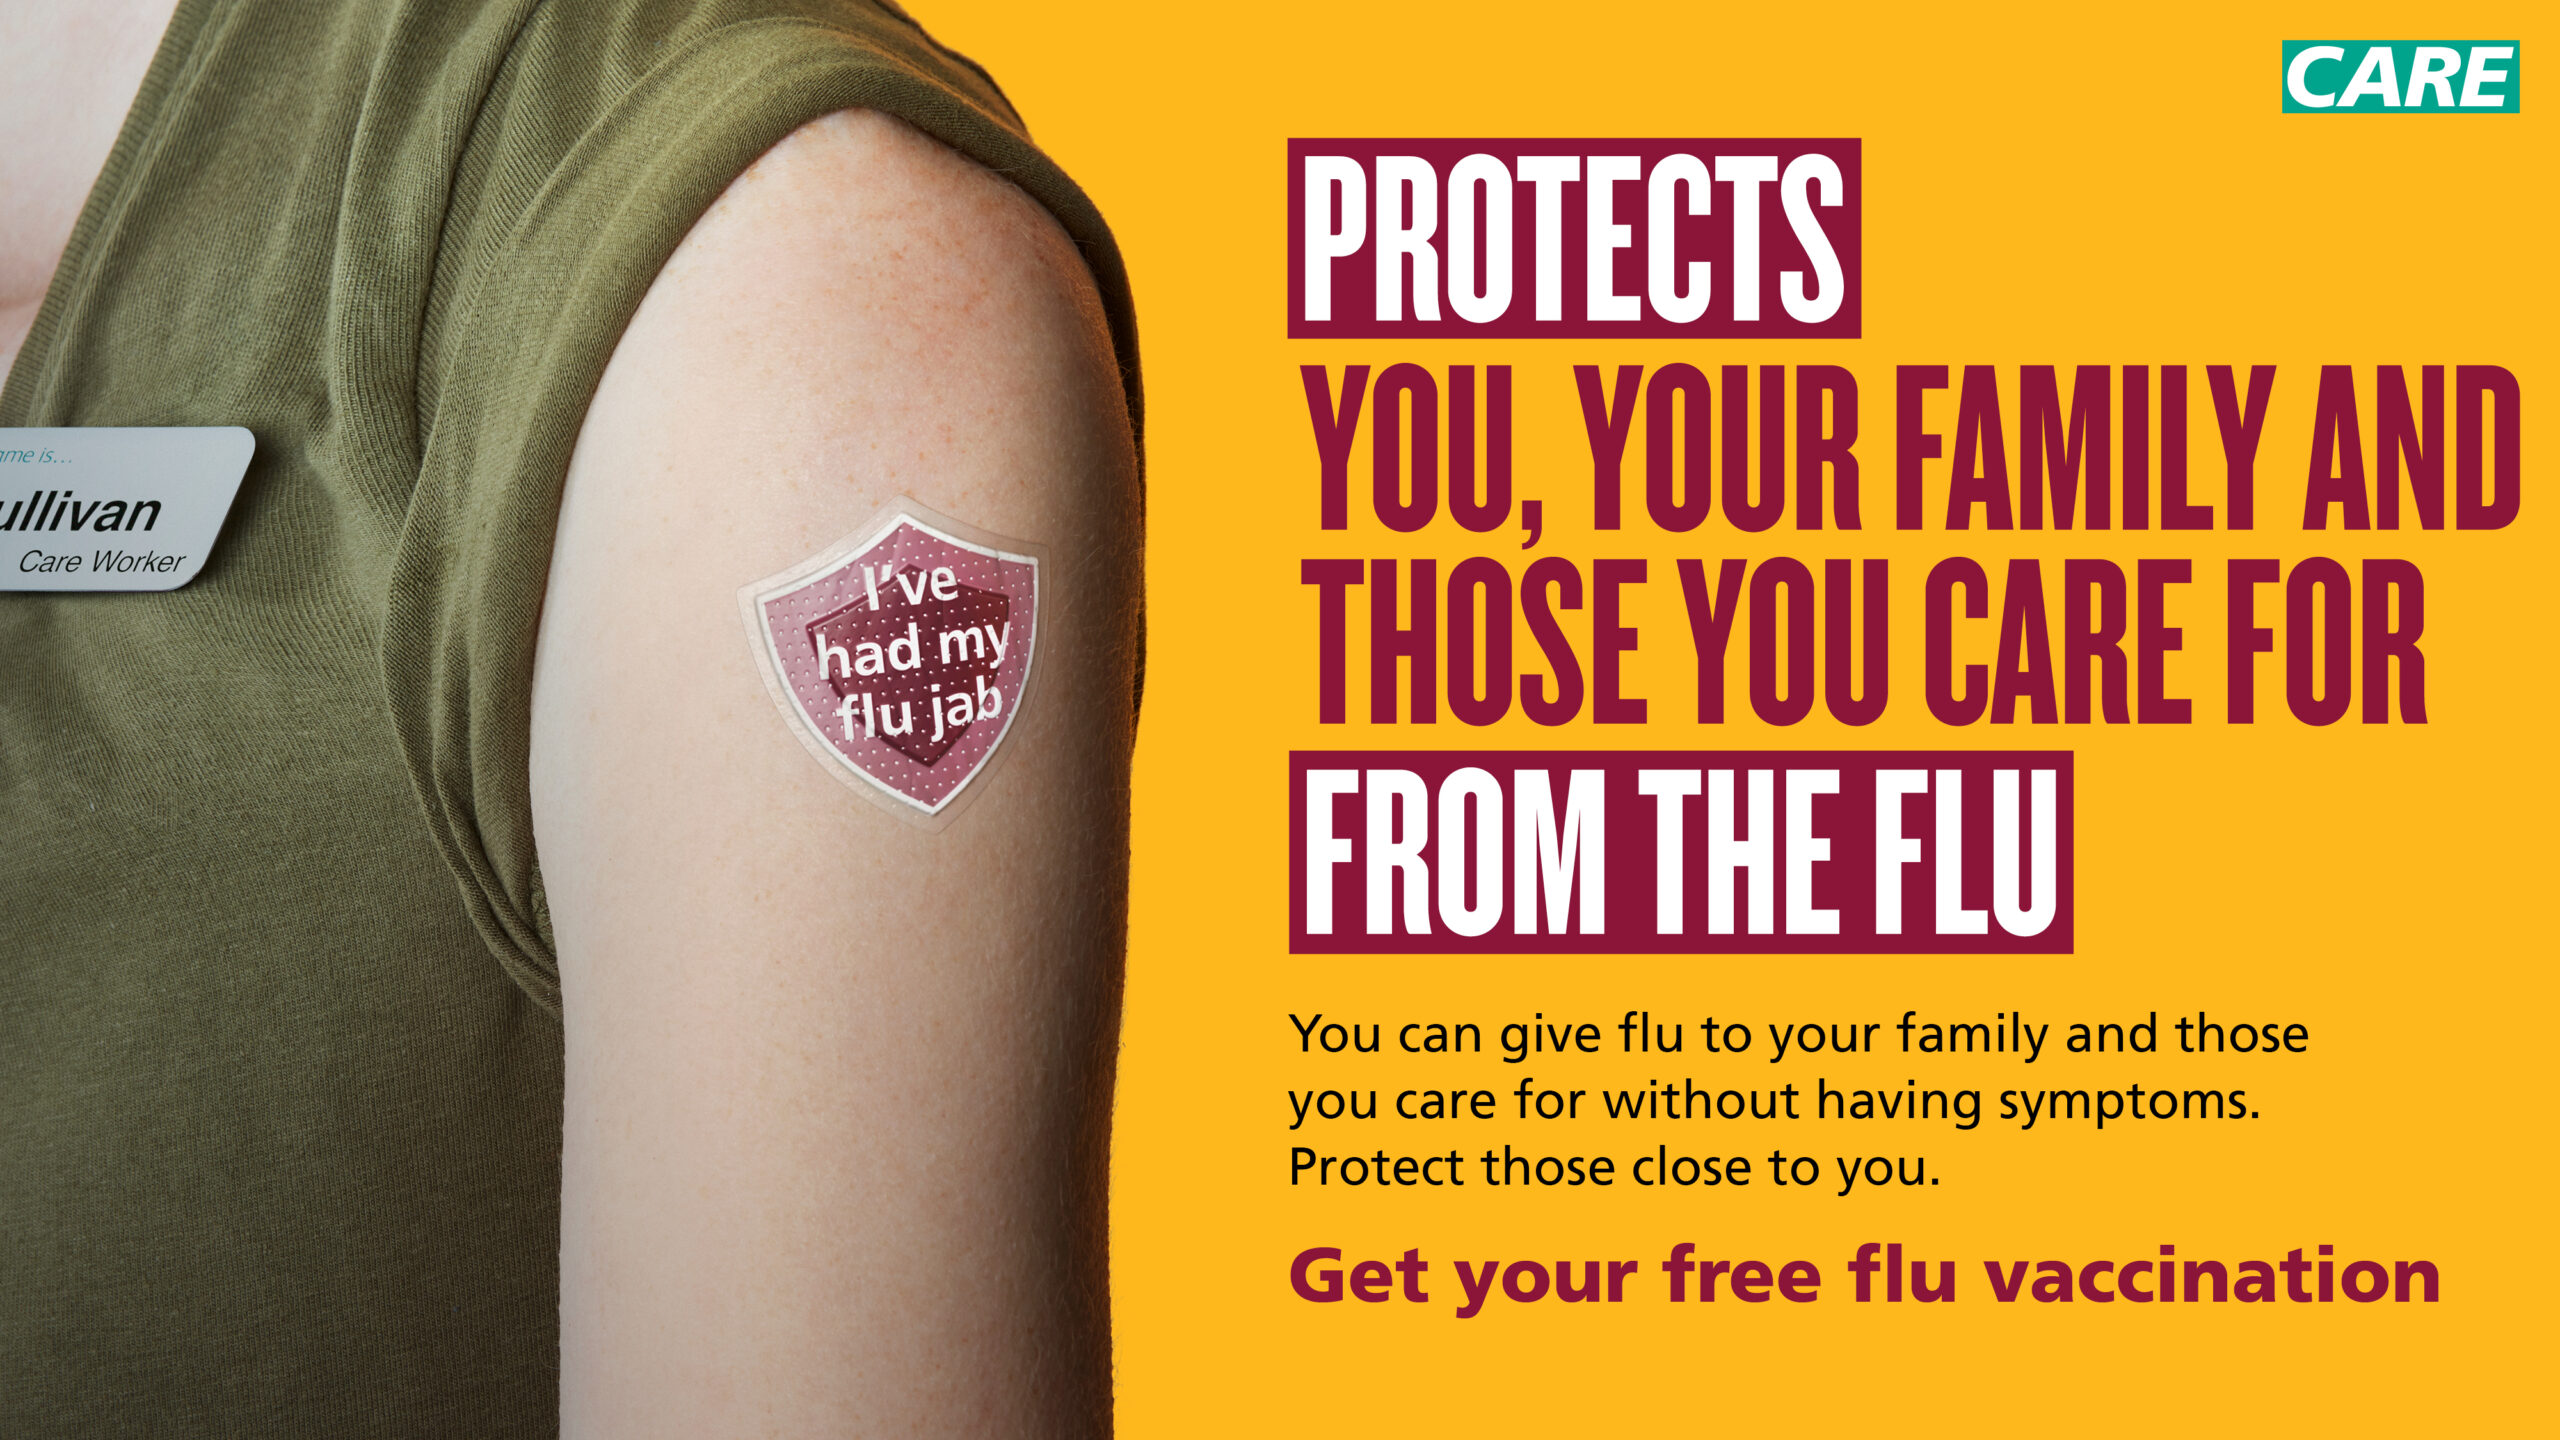 Government post advising people to get a flu vaccination.